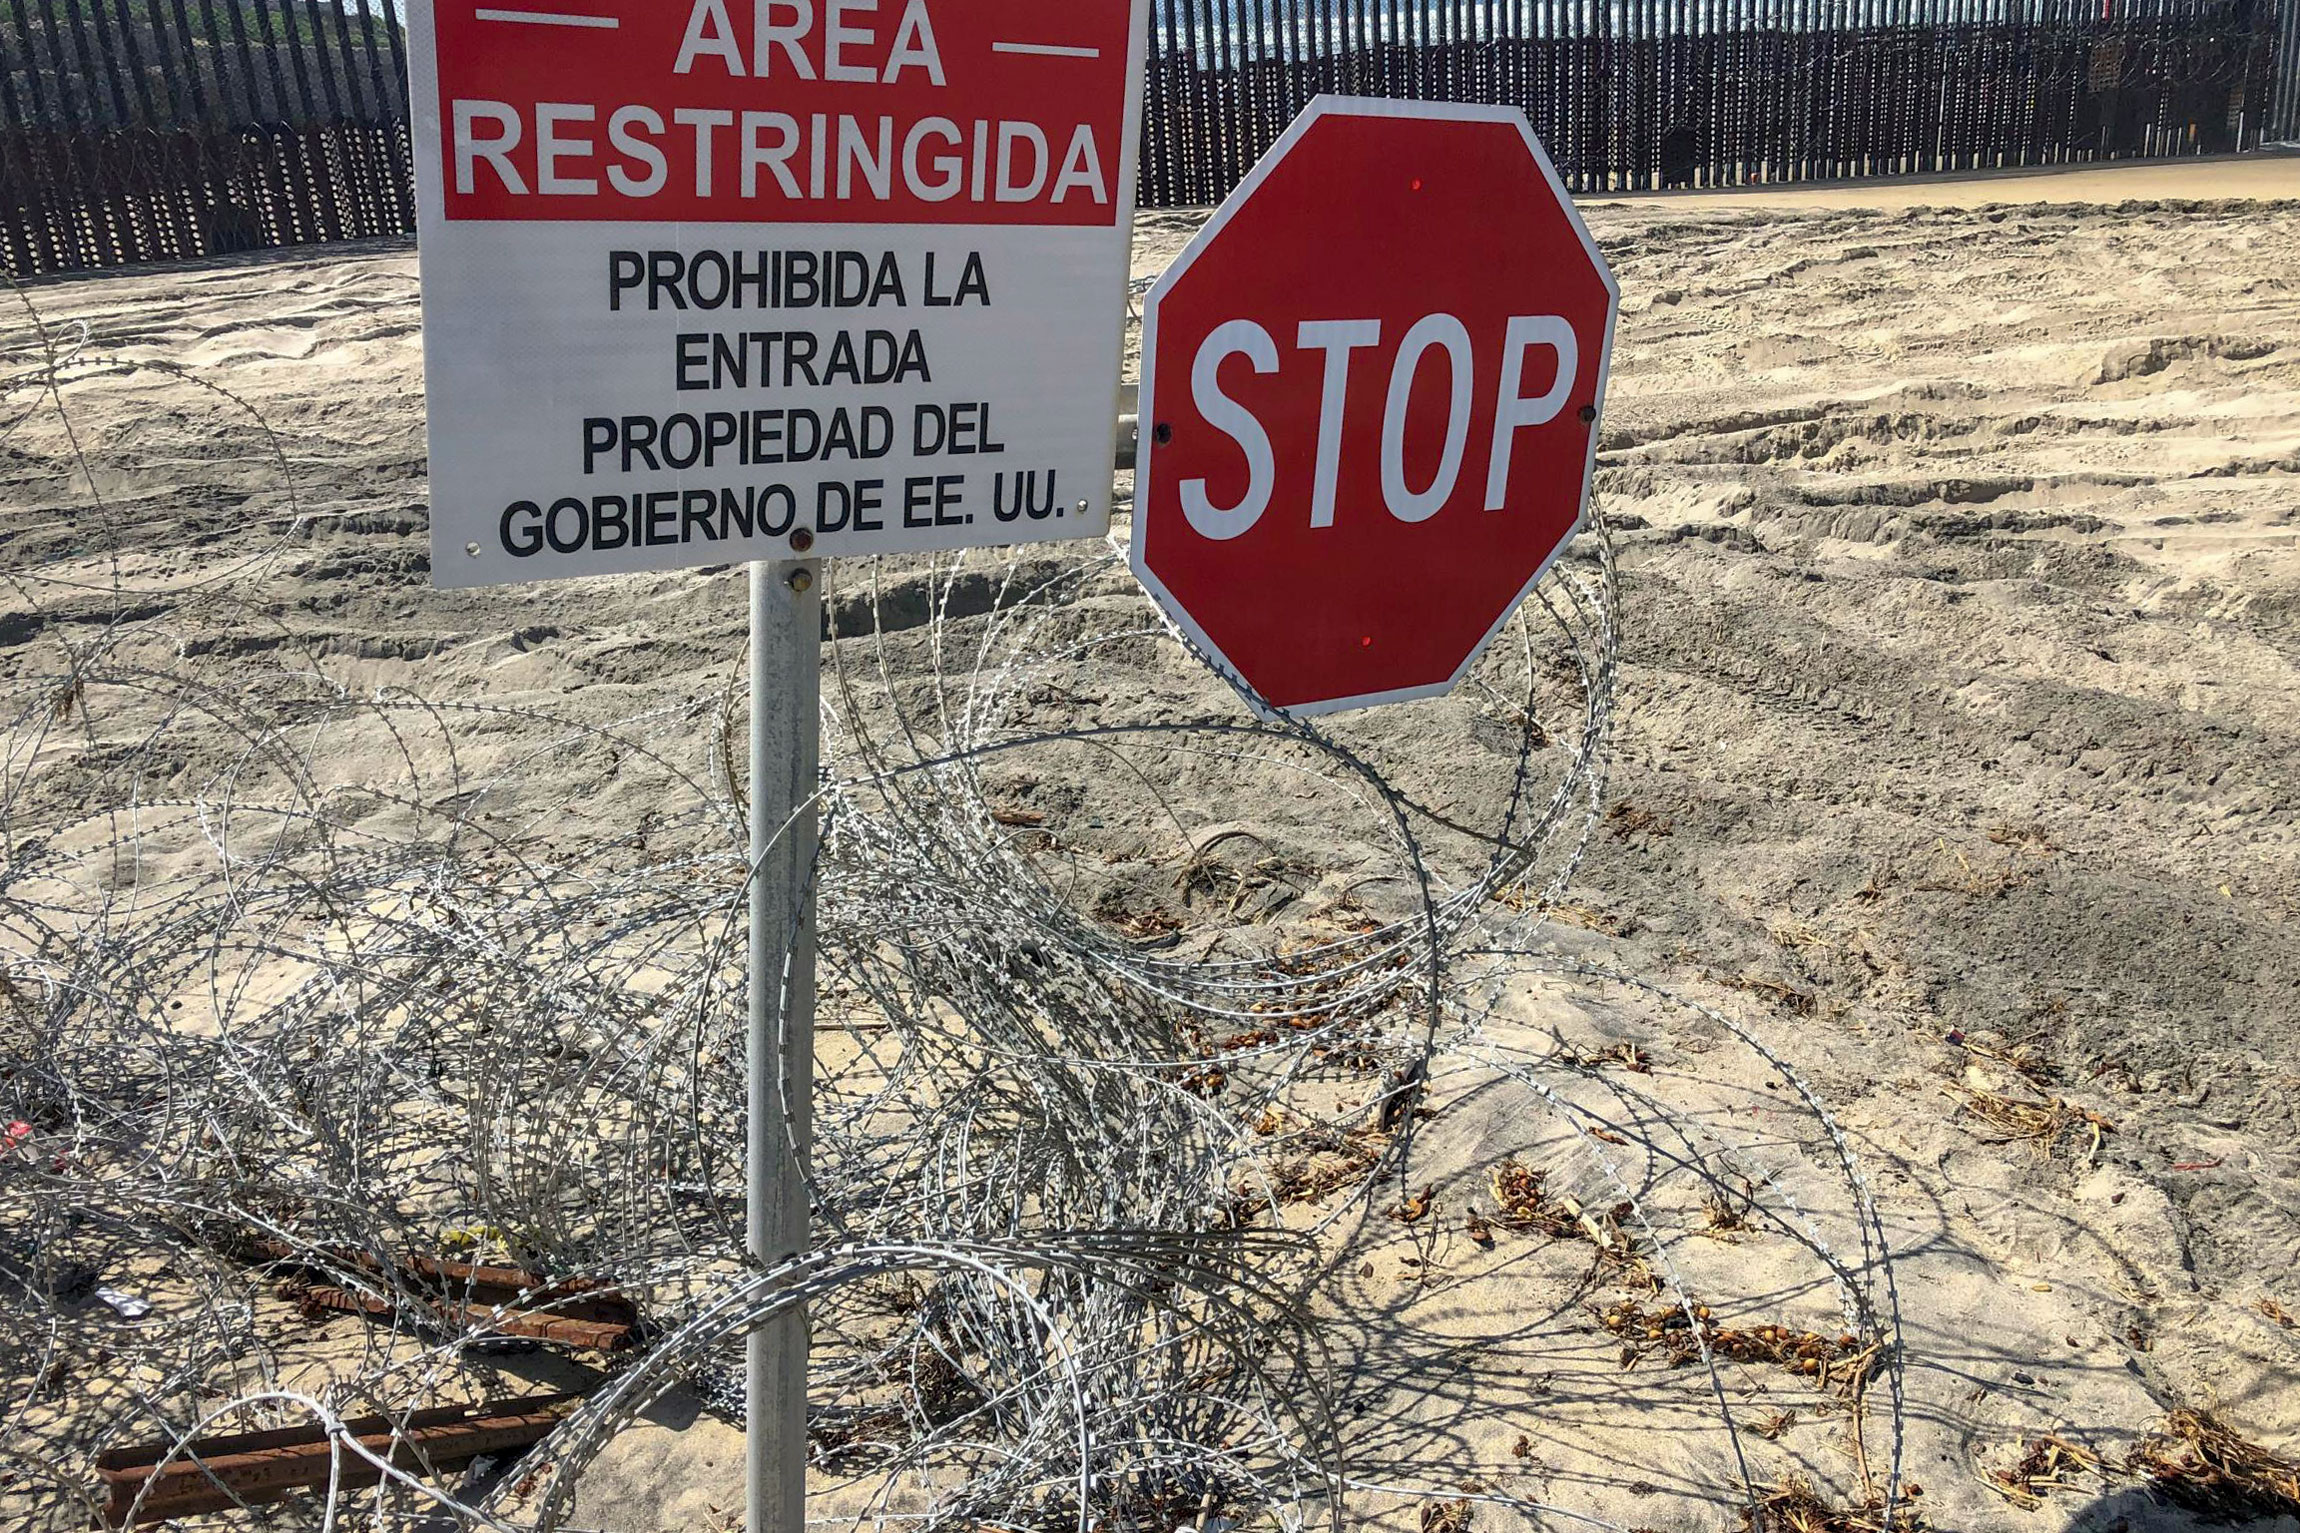 <p>Concertina wire installed by U.S. Marines remains on the beach near the U.S.-Mexico border fence in San Diego, California</p>